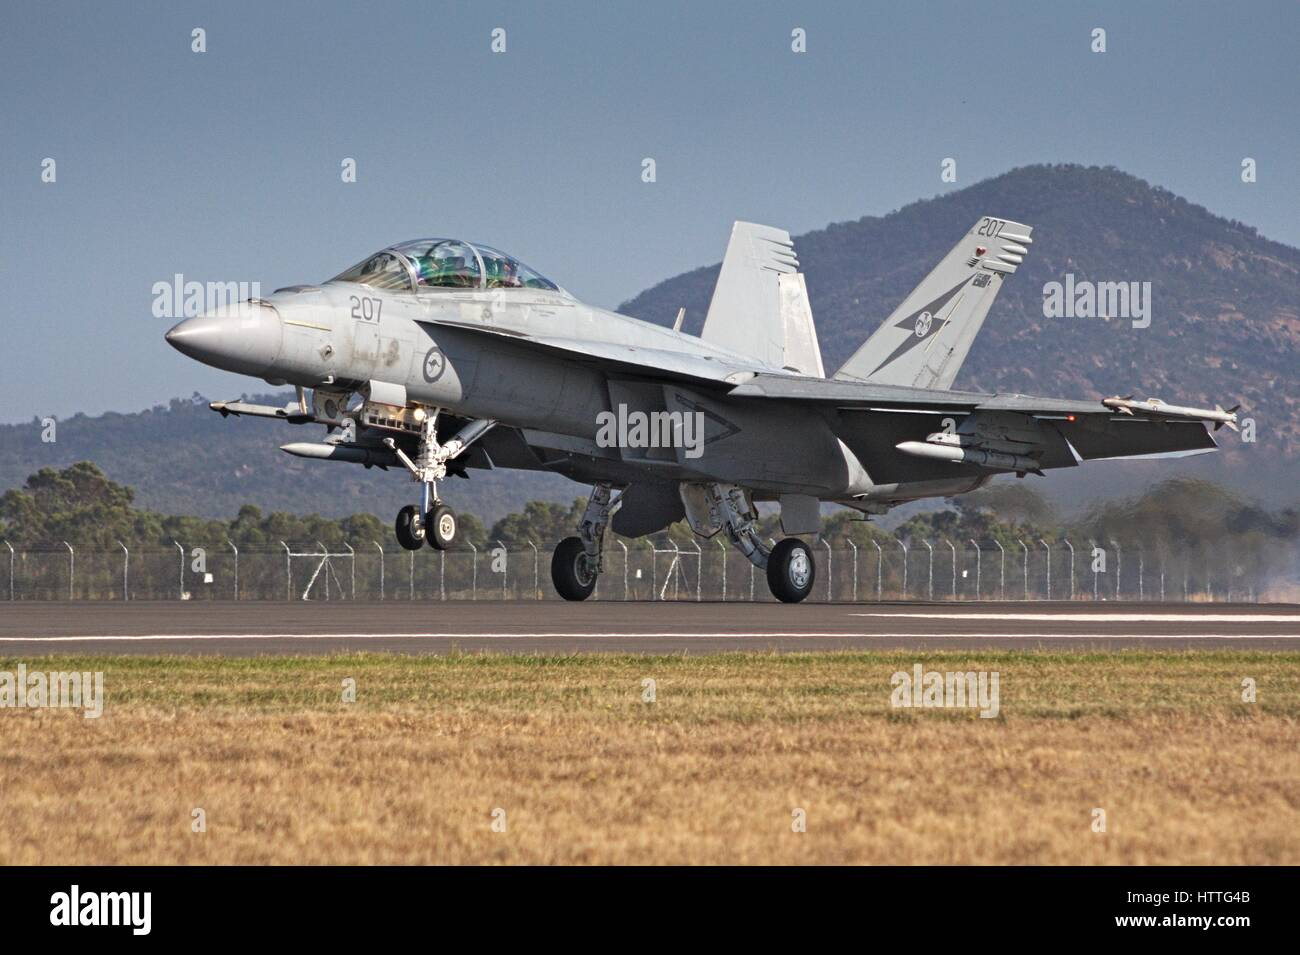 F/A-18F Super Hornet lifting off on the runway at the Avalon airshow, Melbourne, Australia, 2017. - Stock Image